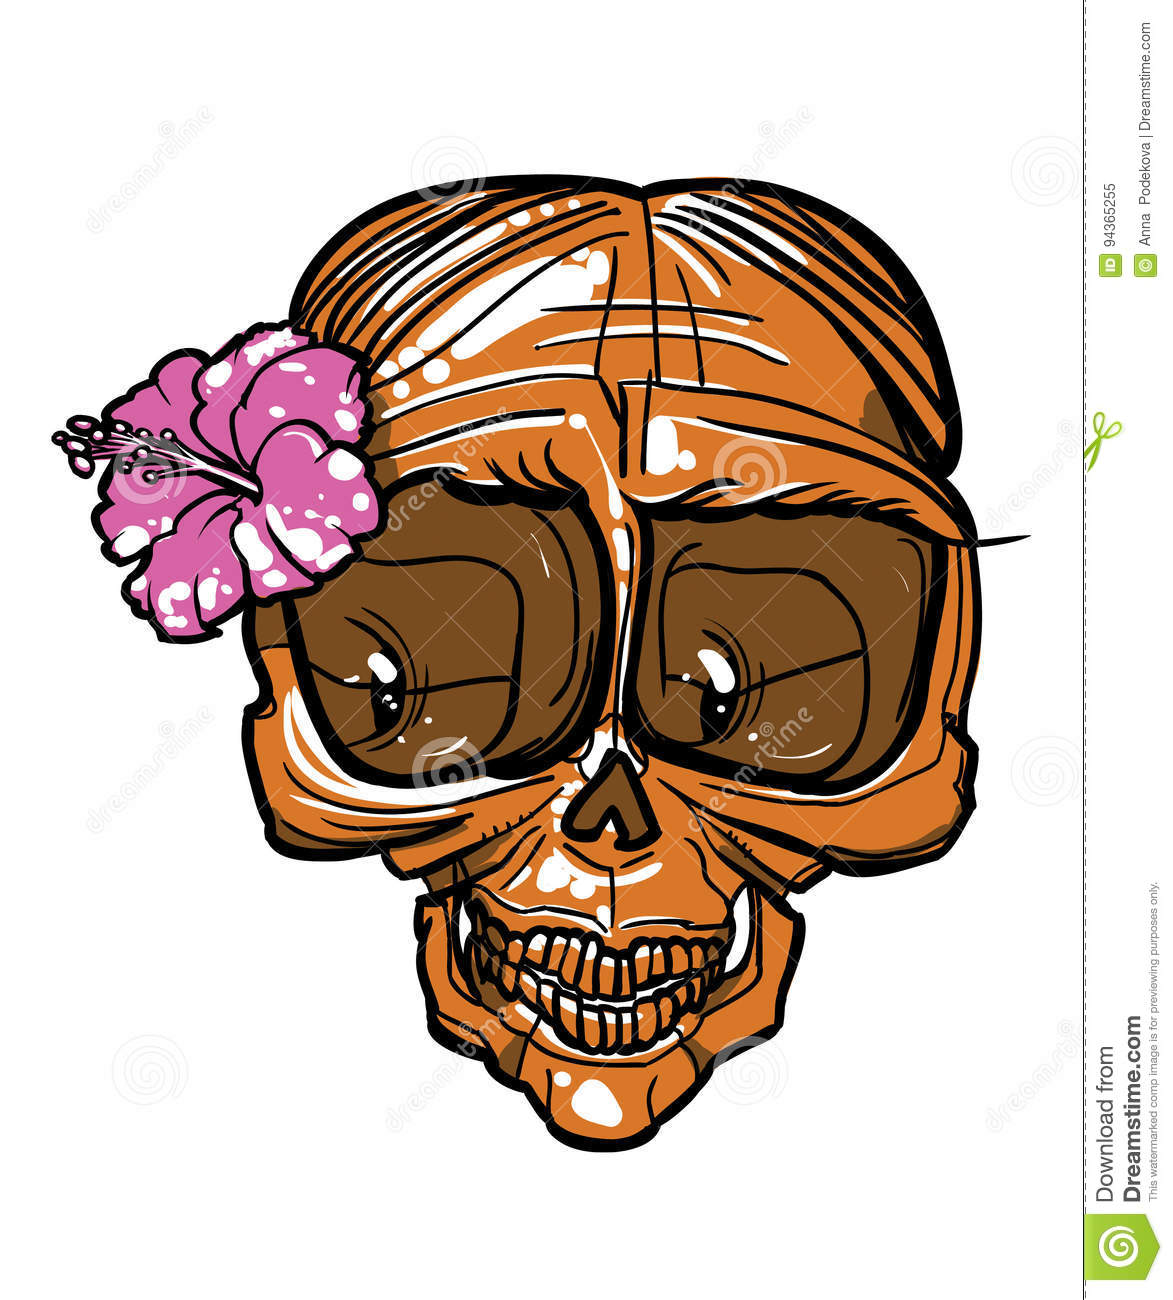 Lady skull with flower